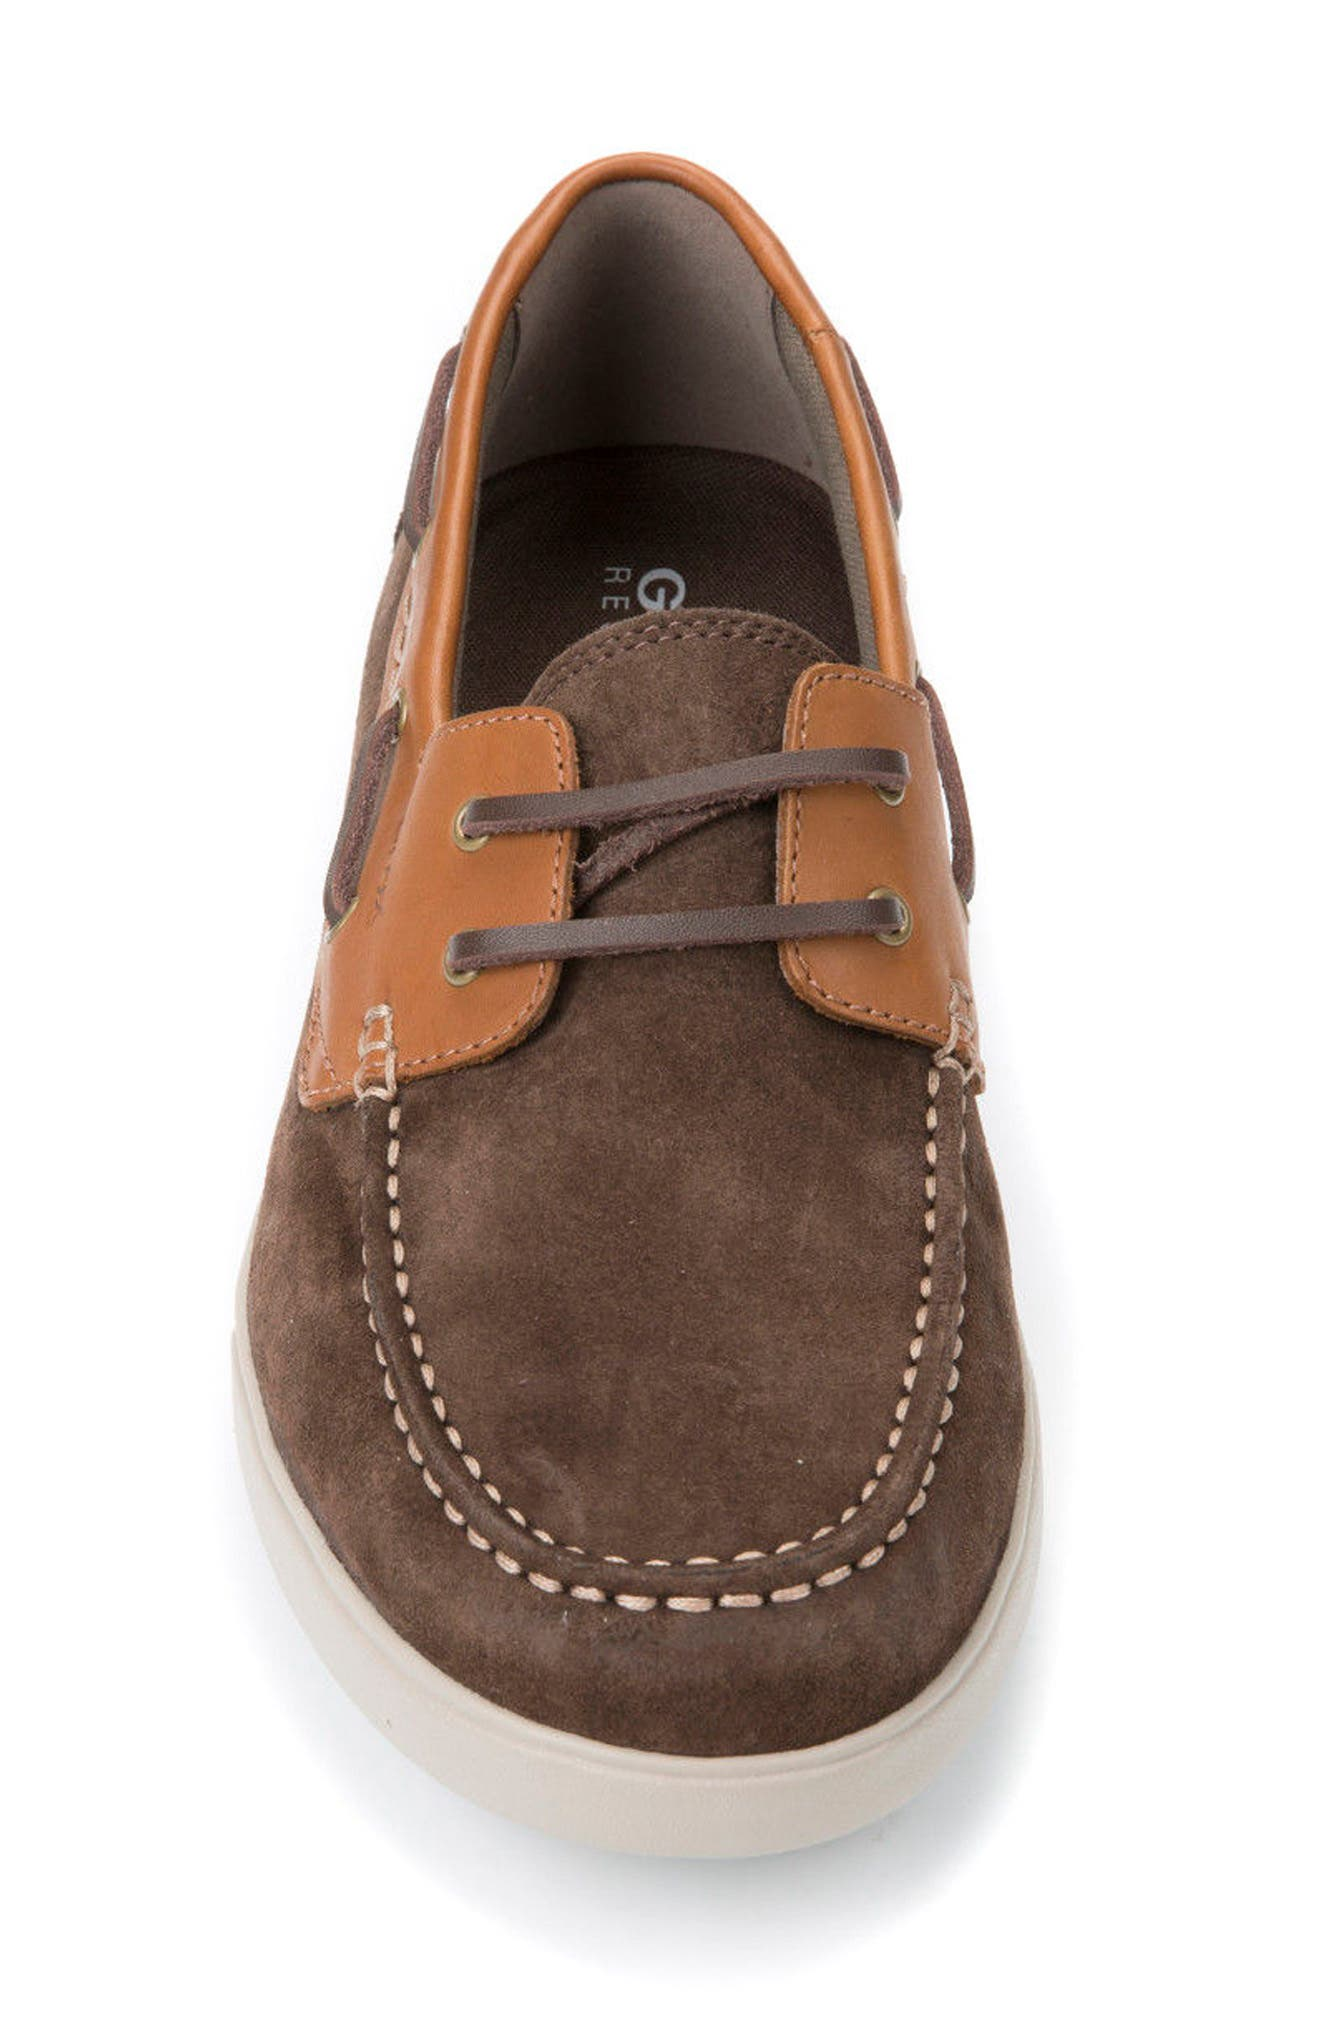 Walee 2 Boat Shoe,                             Alternate thumbnail 4, color,                             200